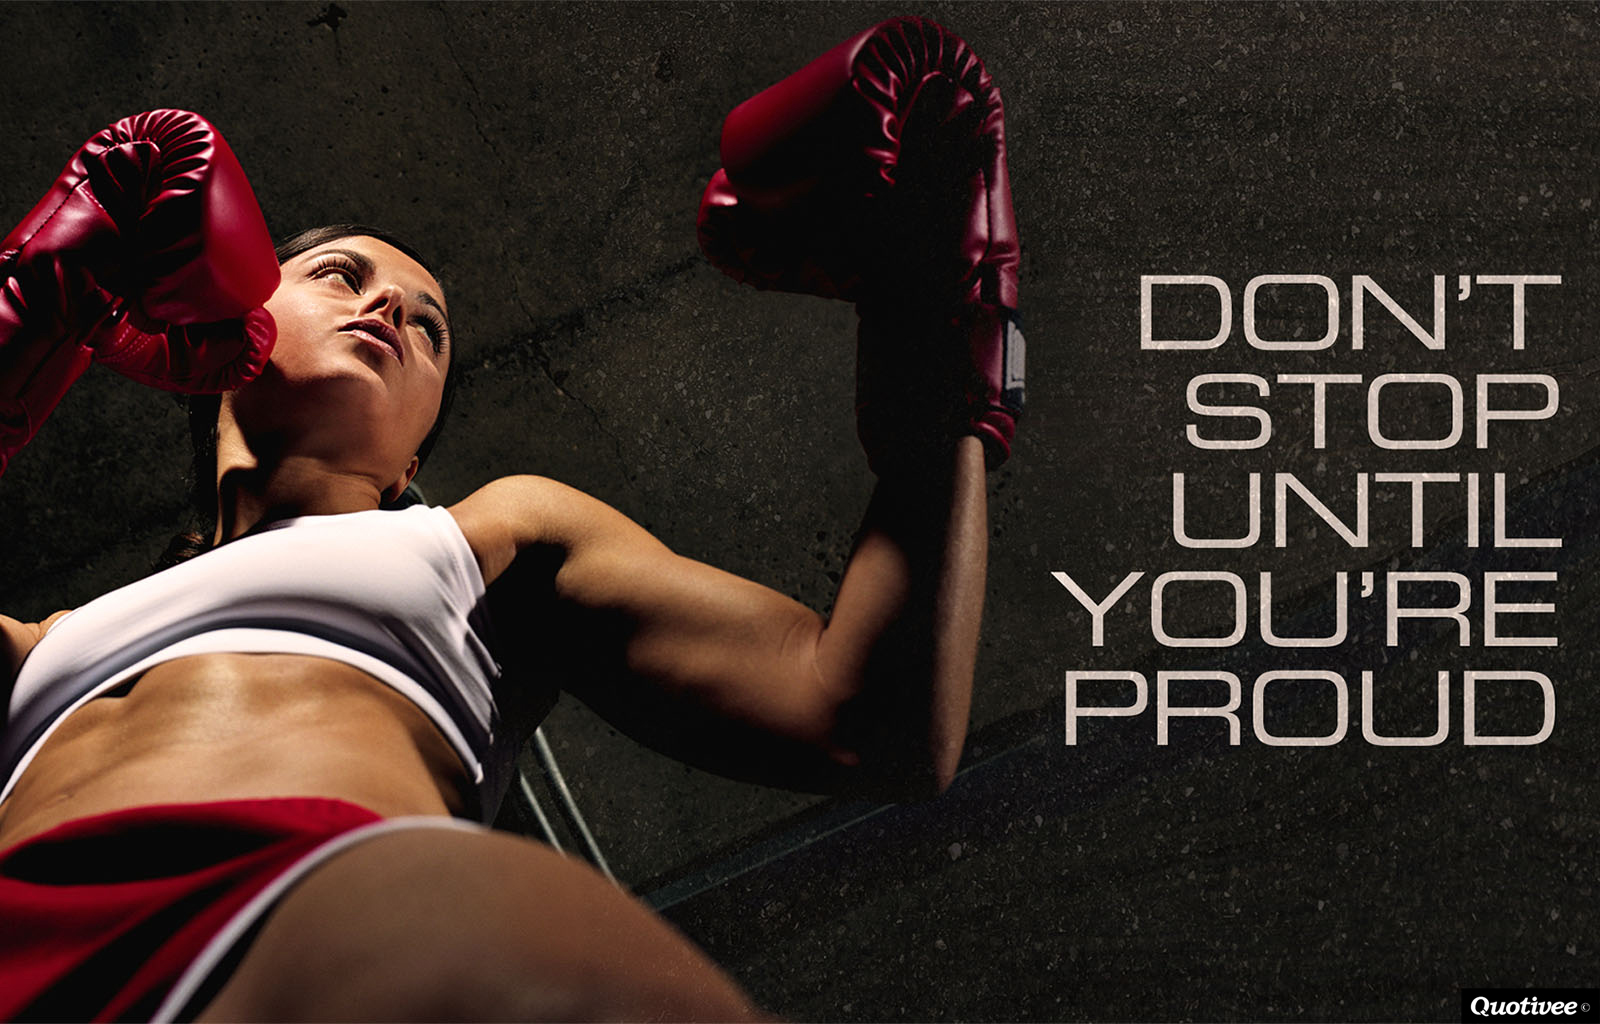 2013 business health fitness life motivation quote wallpapers success 1600x1024